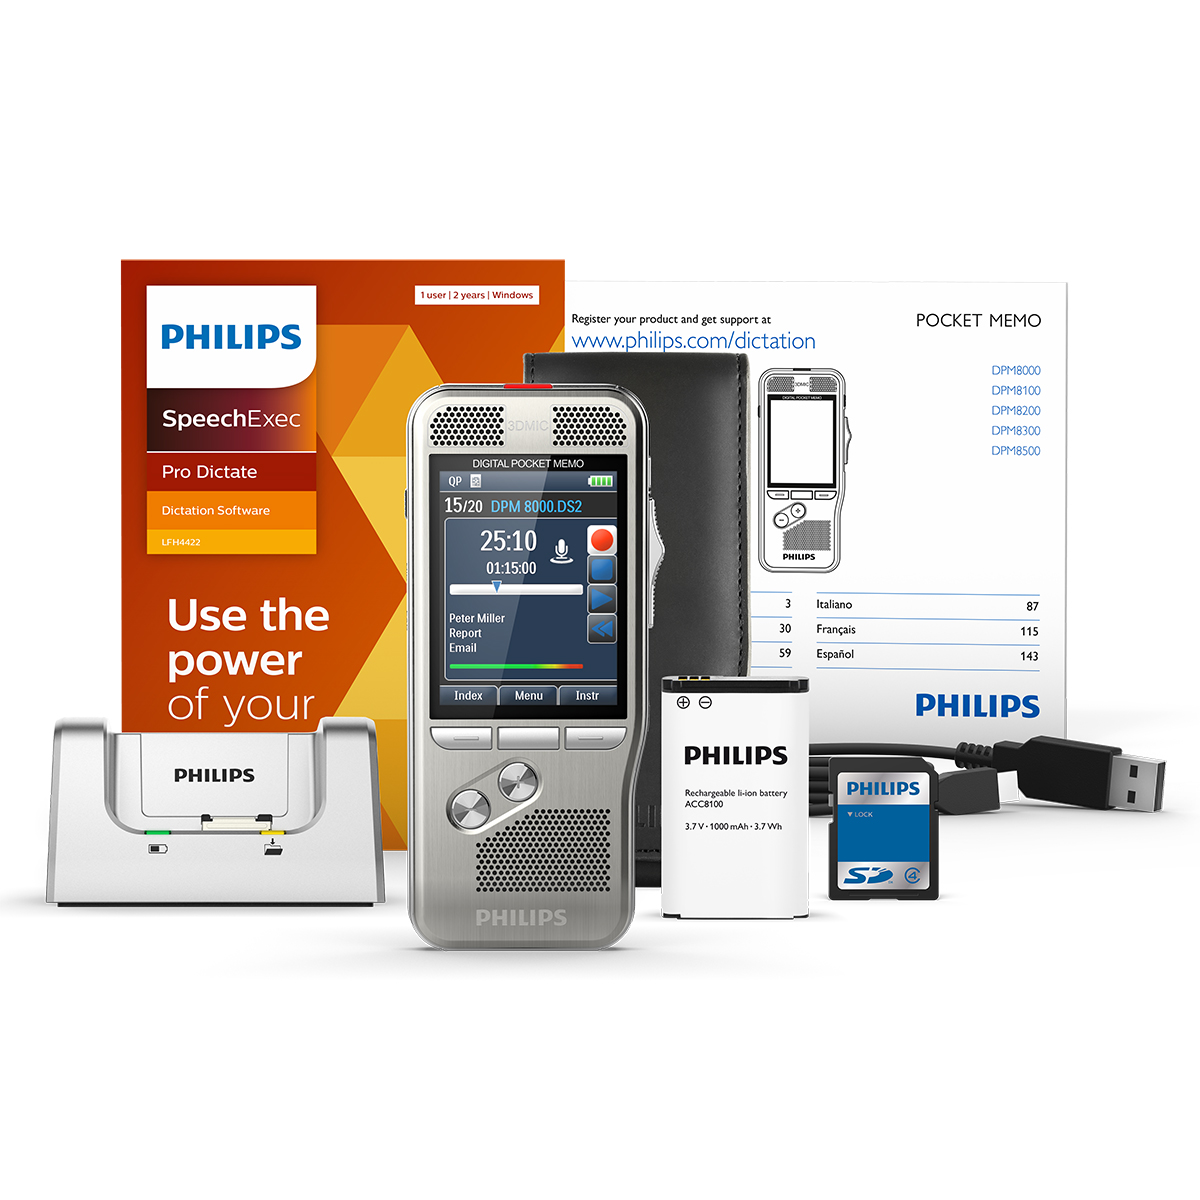 Philips DPM8200 Pocket Memo with SpeechExec Pro Dictate 11